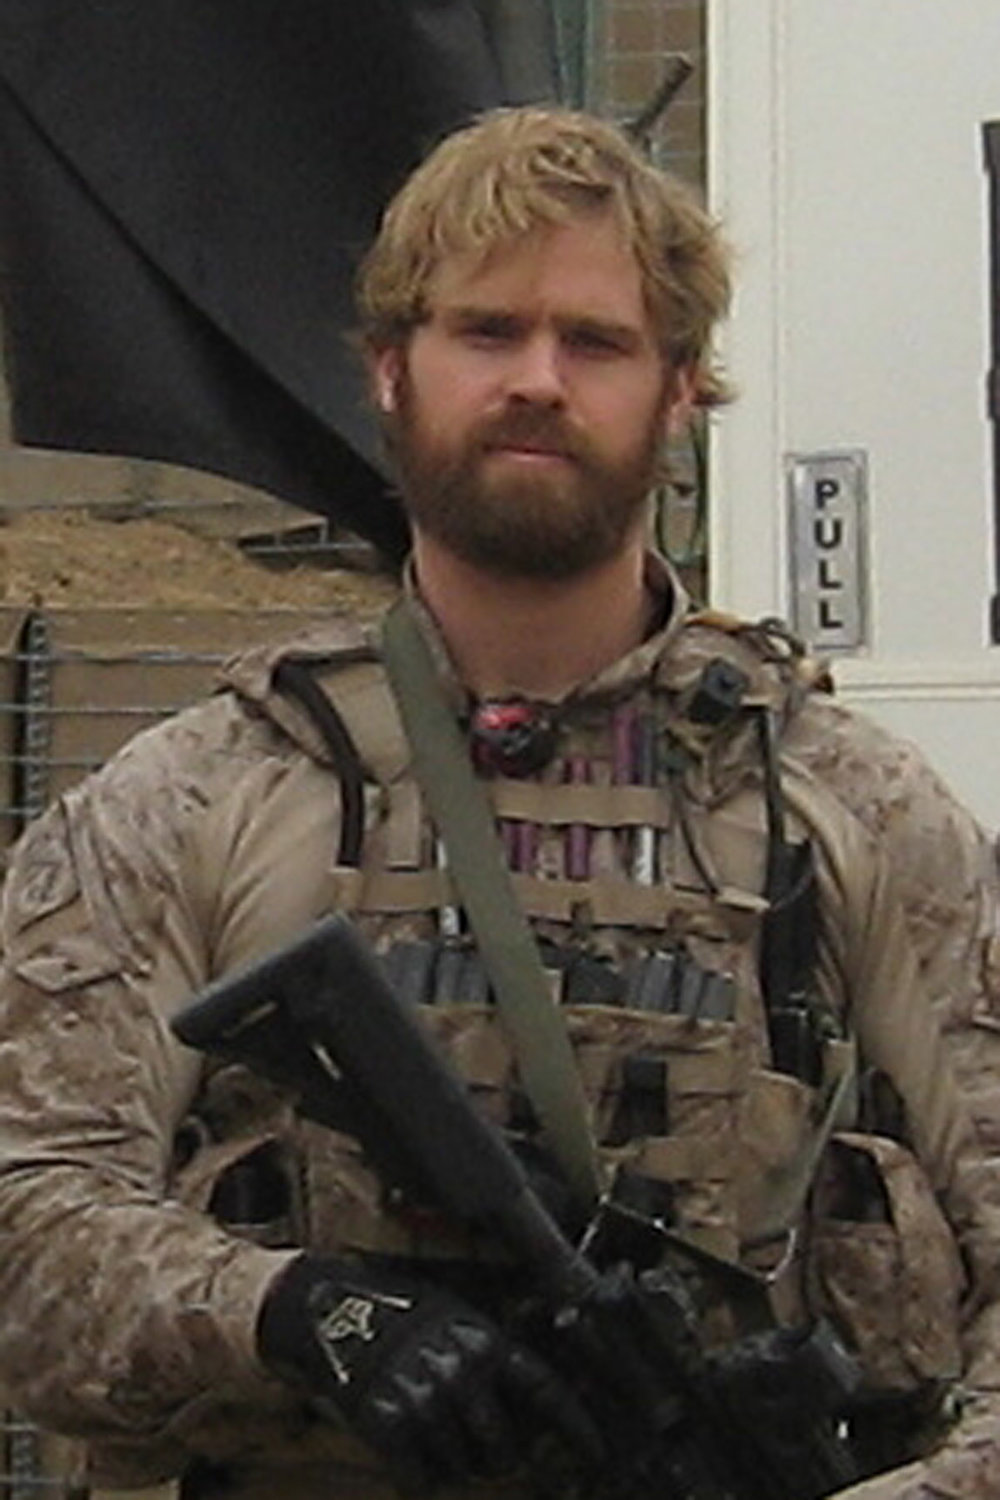 Chief Petty Officer Nate Hardy was killed Sunday February 4th, 2008 during combat operations in Iraq. Nate is survived by his wife, Mindi, and his infant son Parker.